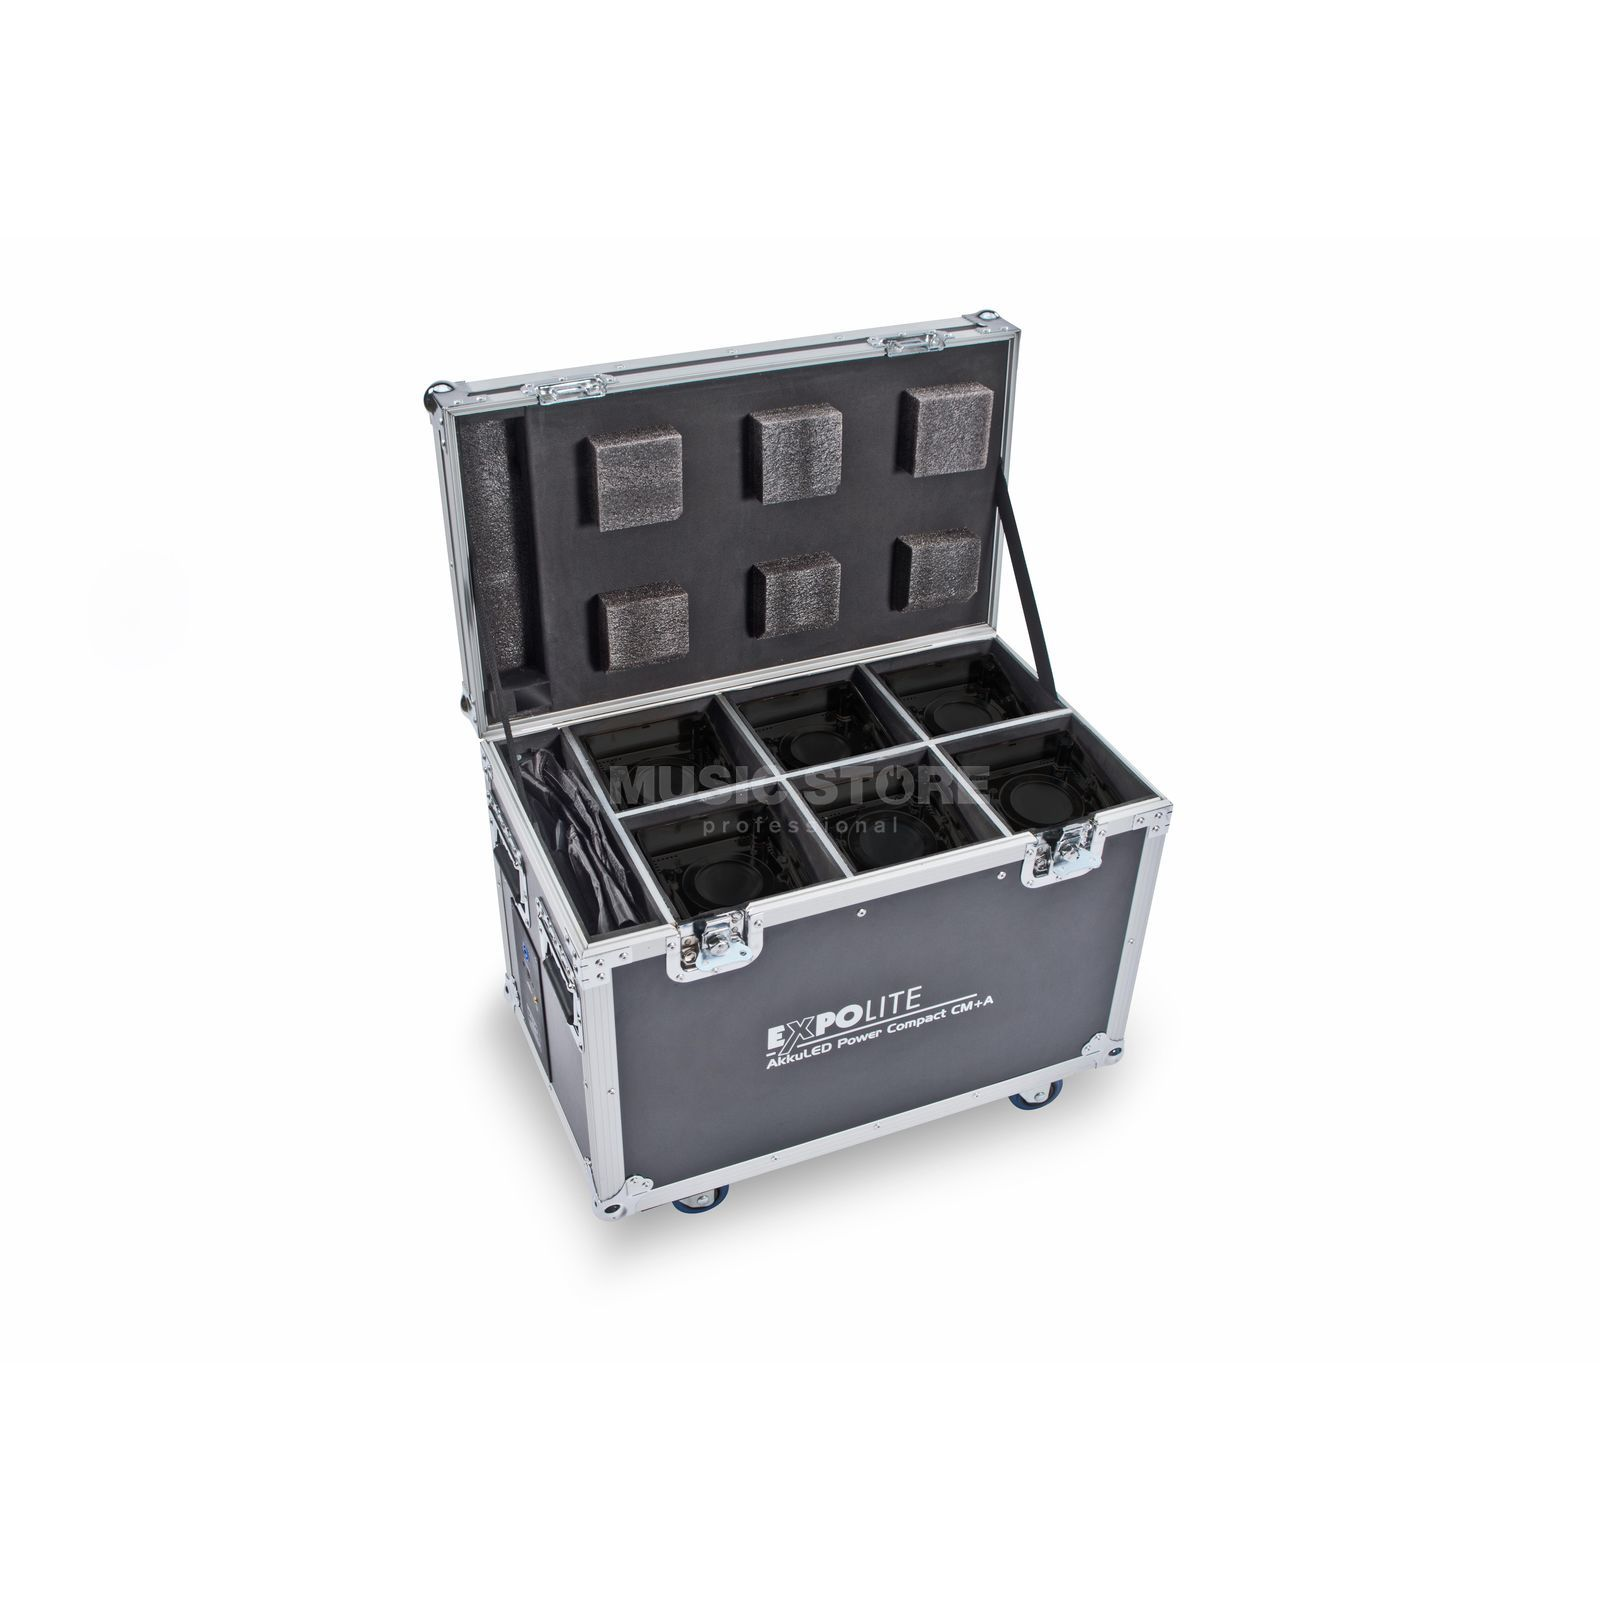 Expolite AkkuLED Power Compact 6-fach Case m. integr. Ladestation Image du produit